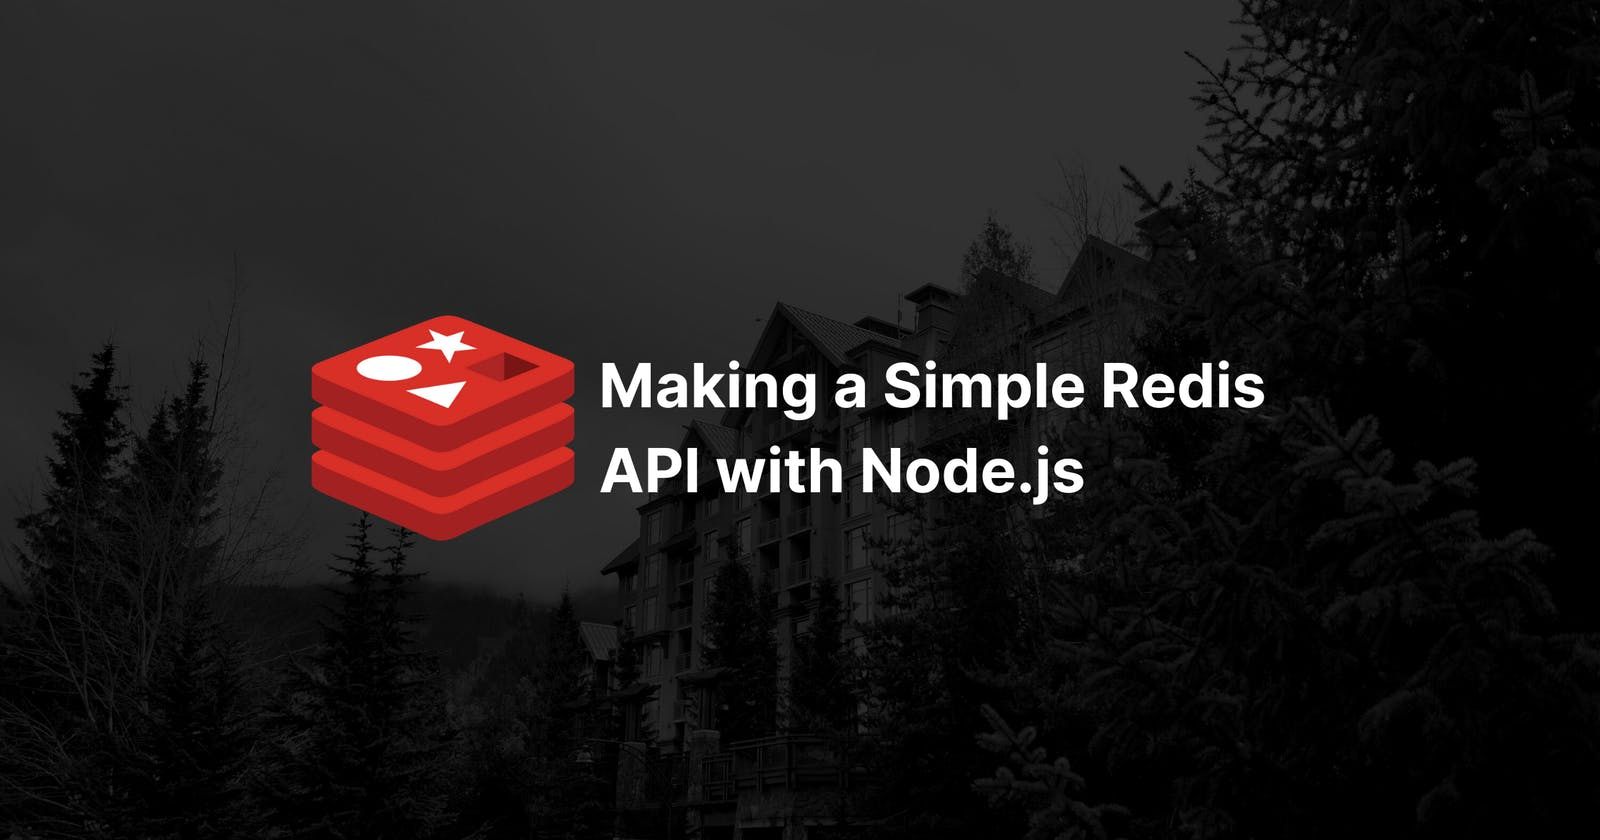 Making a Really Simple Redis API with Node.js